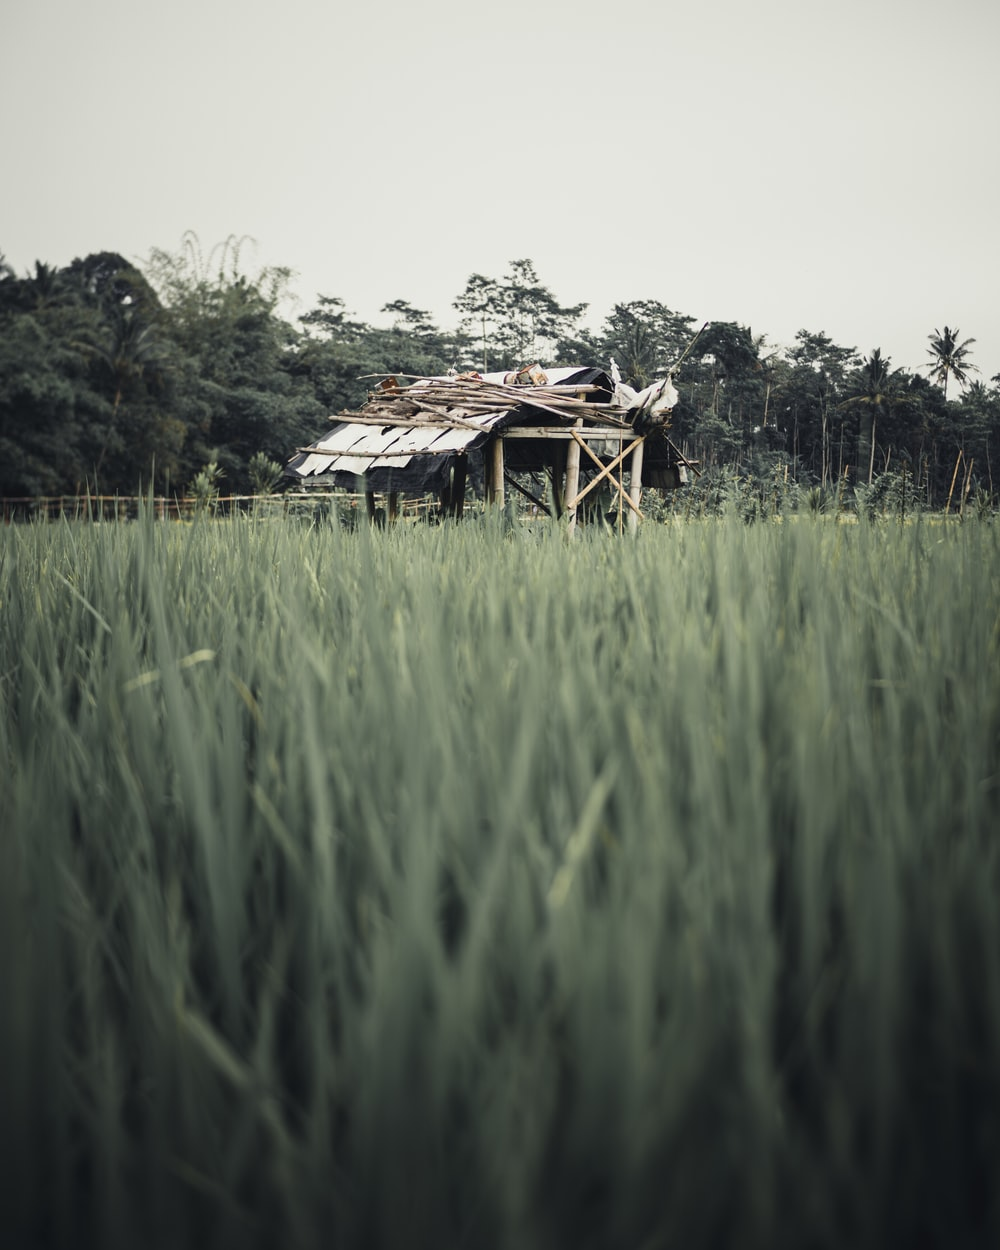 brown wooden house on green grass field during daytime